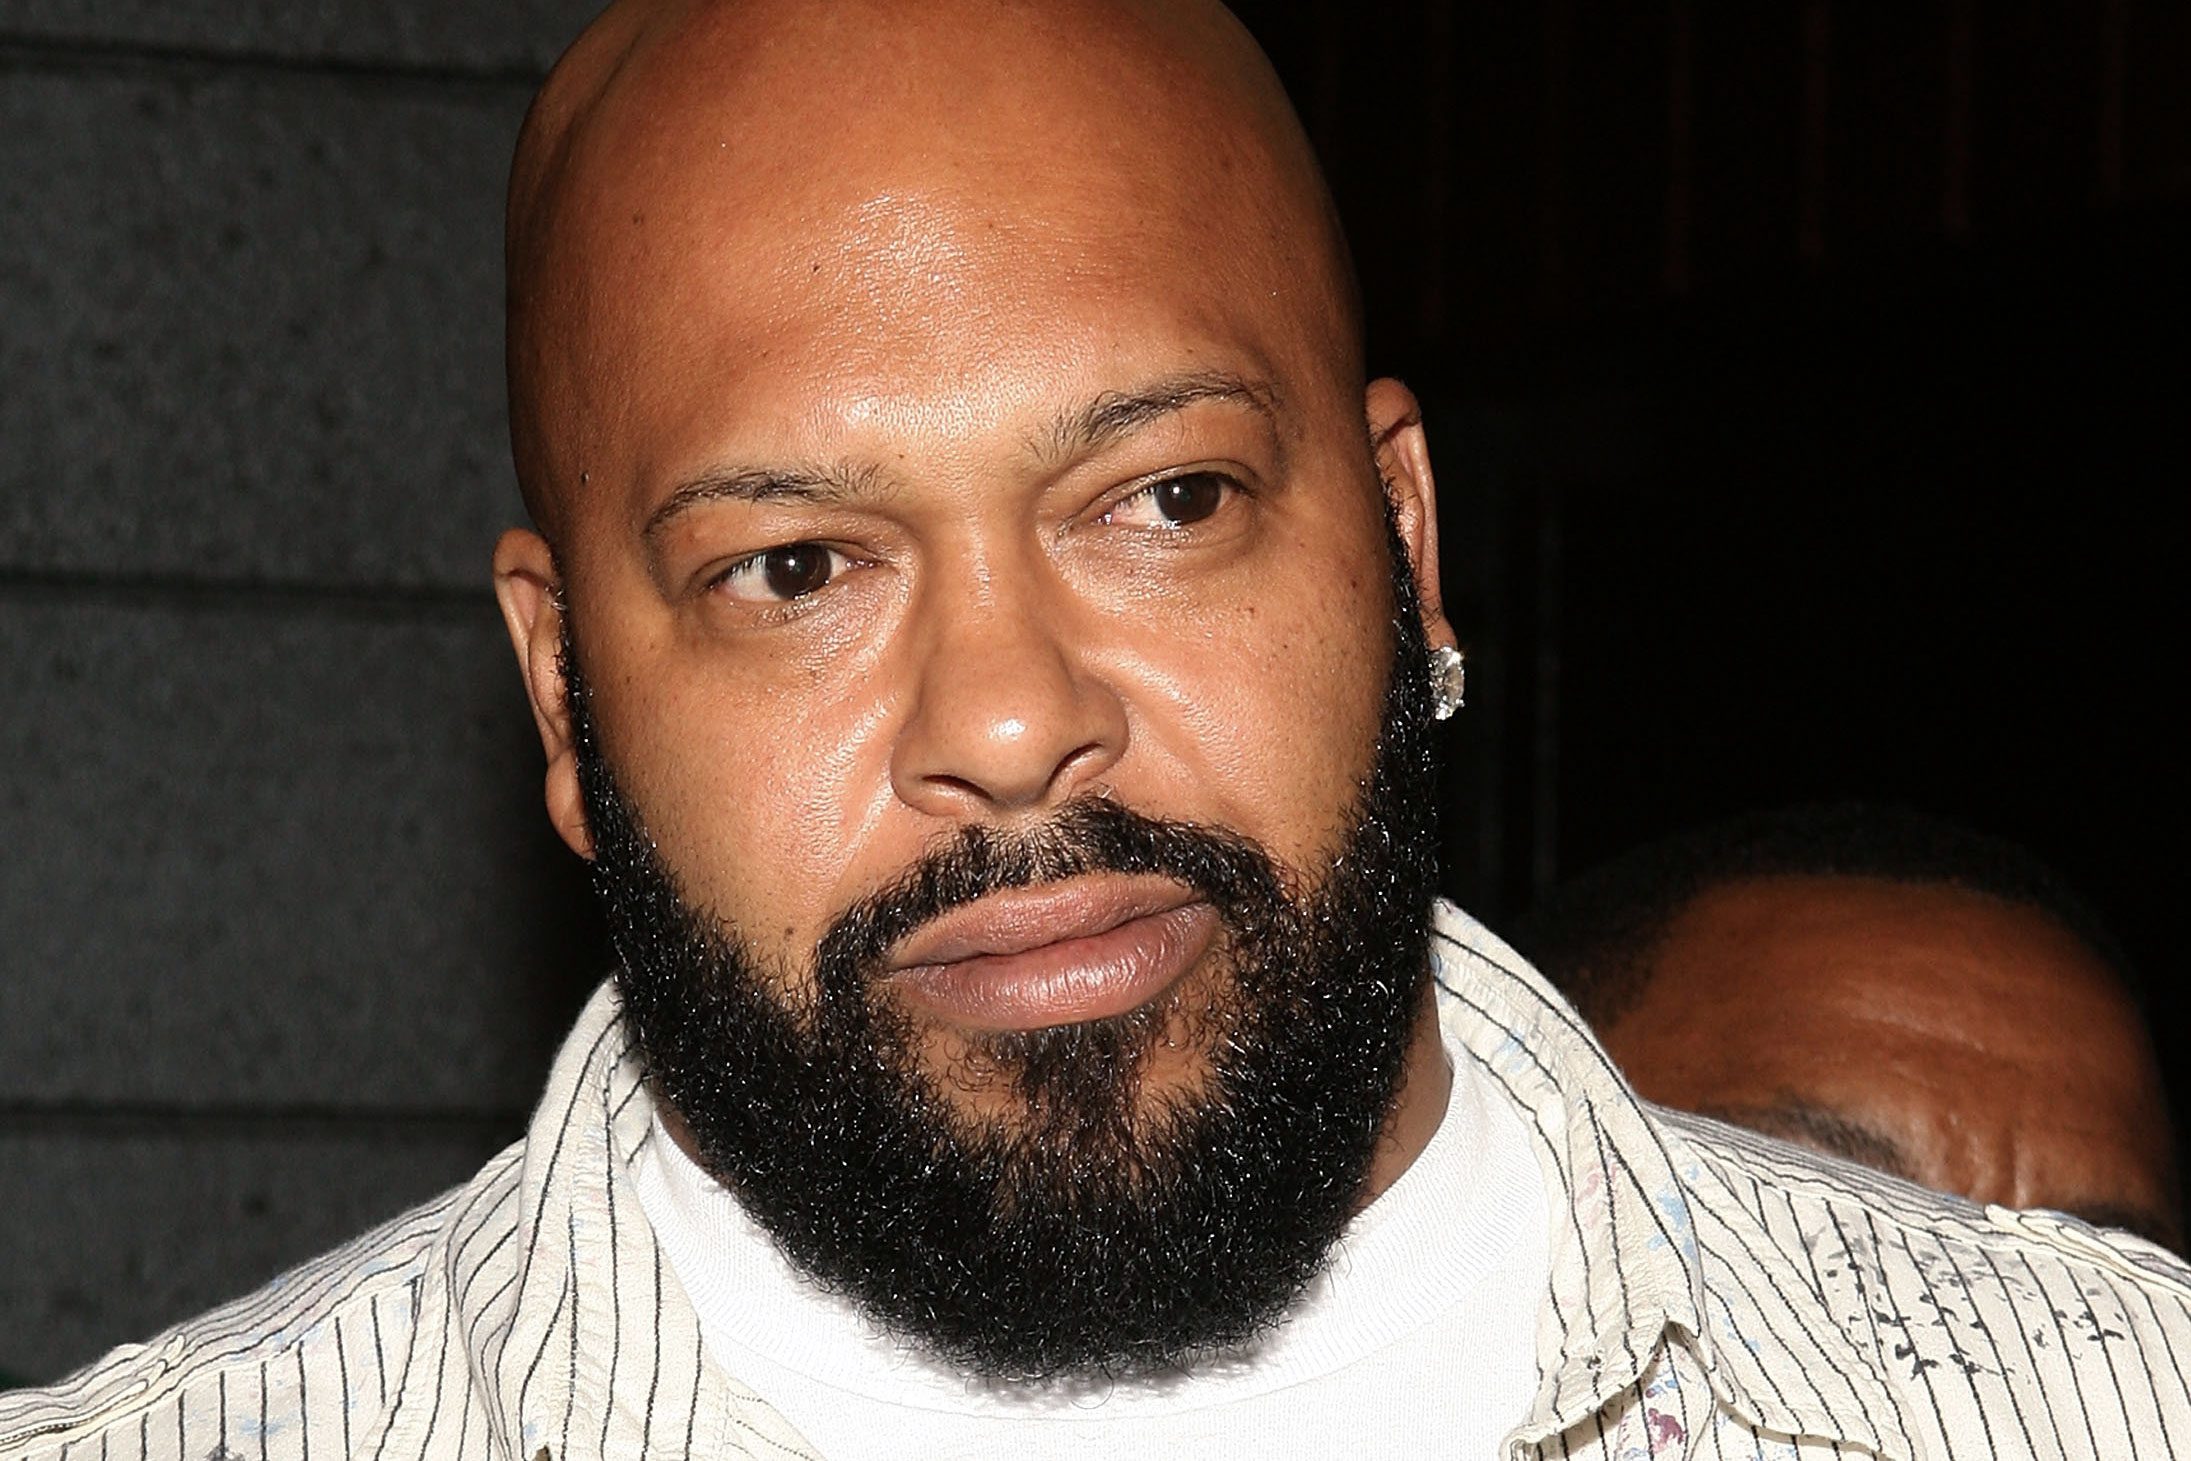 Suge Knight arrives at the NFL Draft Inauguration Party hosted by Desean Jackson and Fred Davis at Sugar nightclub on April 29, 2008 in Hollywood.